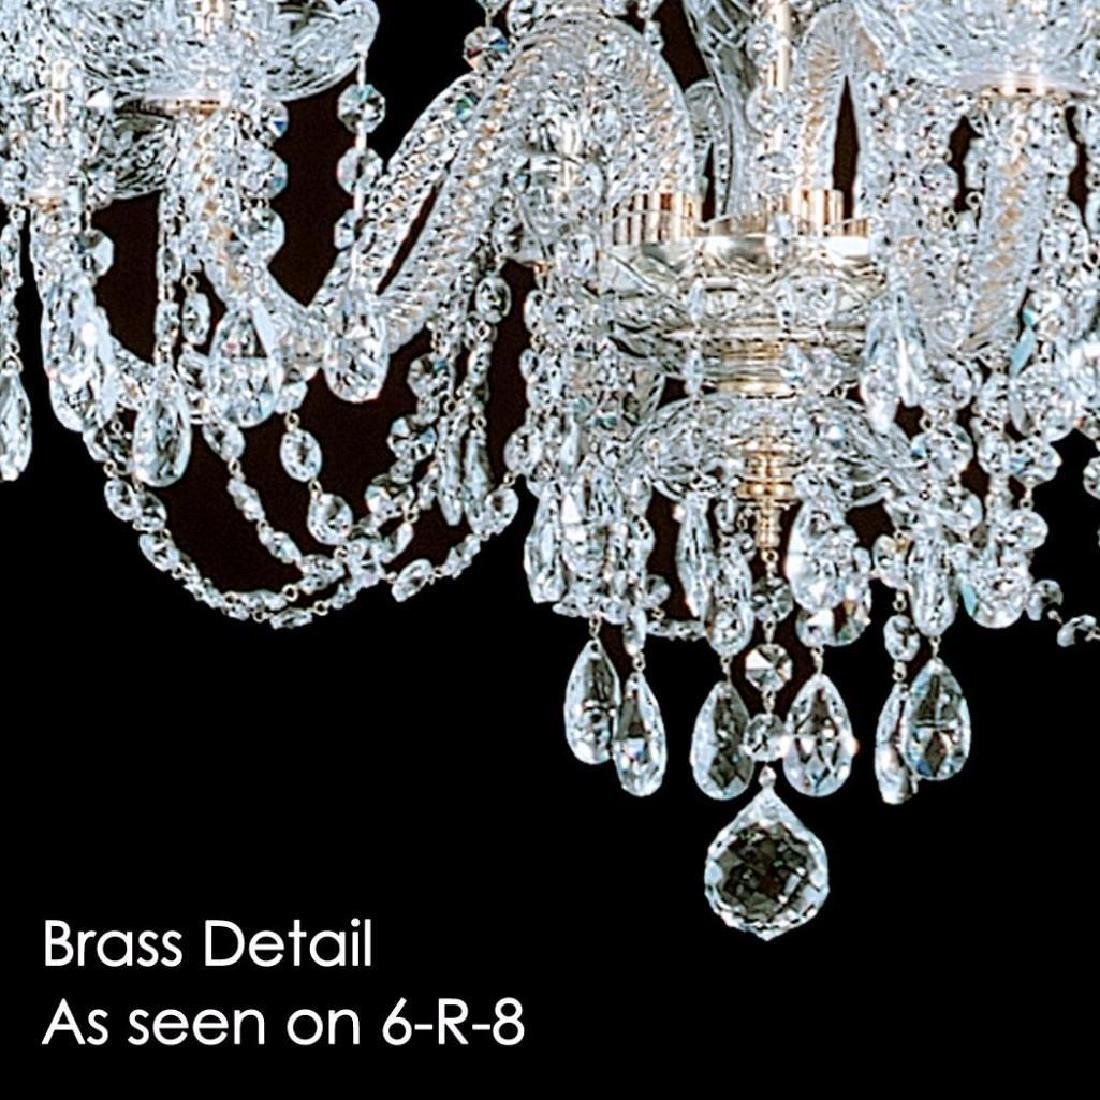 6-R-8 NF - 6 LIGHT CRYSTAL CHANDELIER WITH SWAROVSKI - - 3